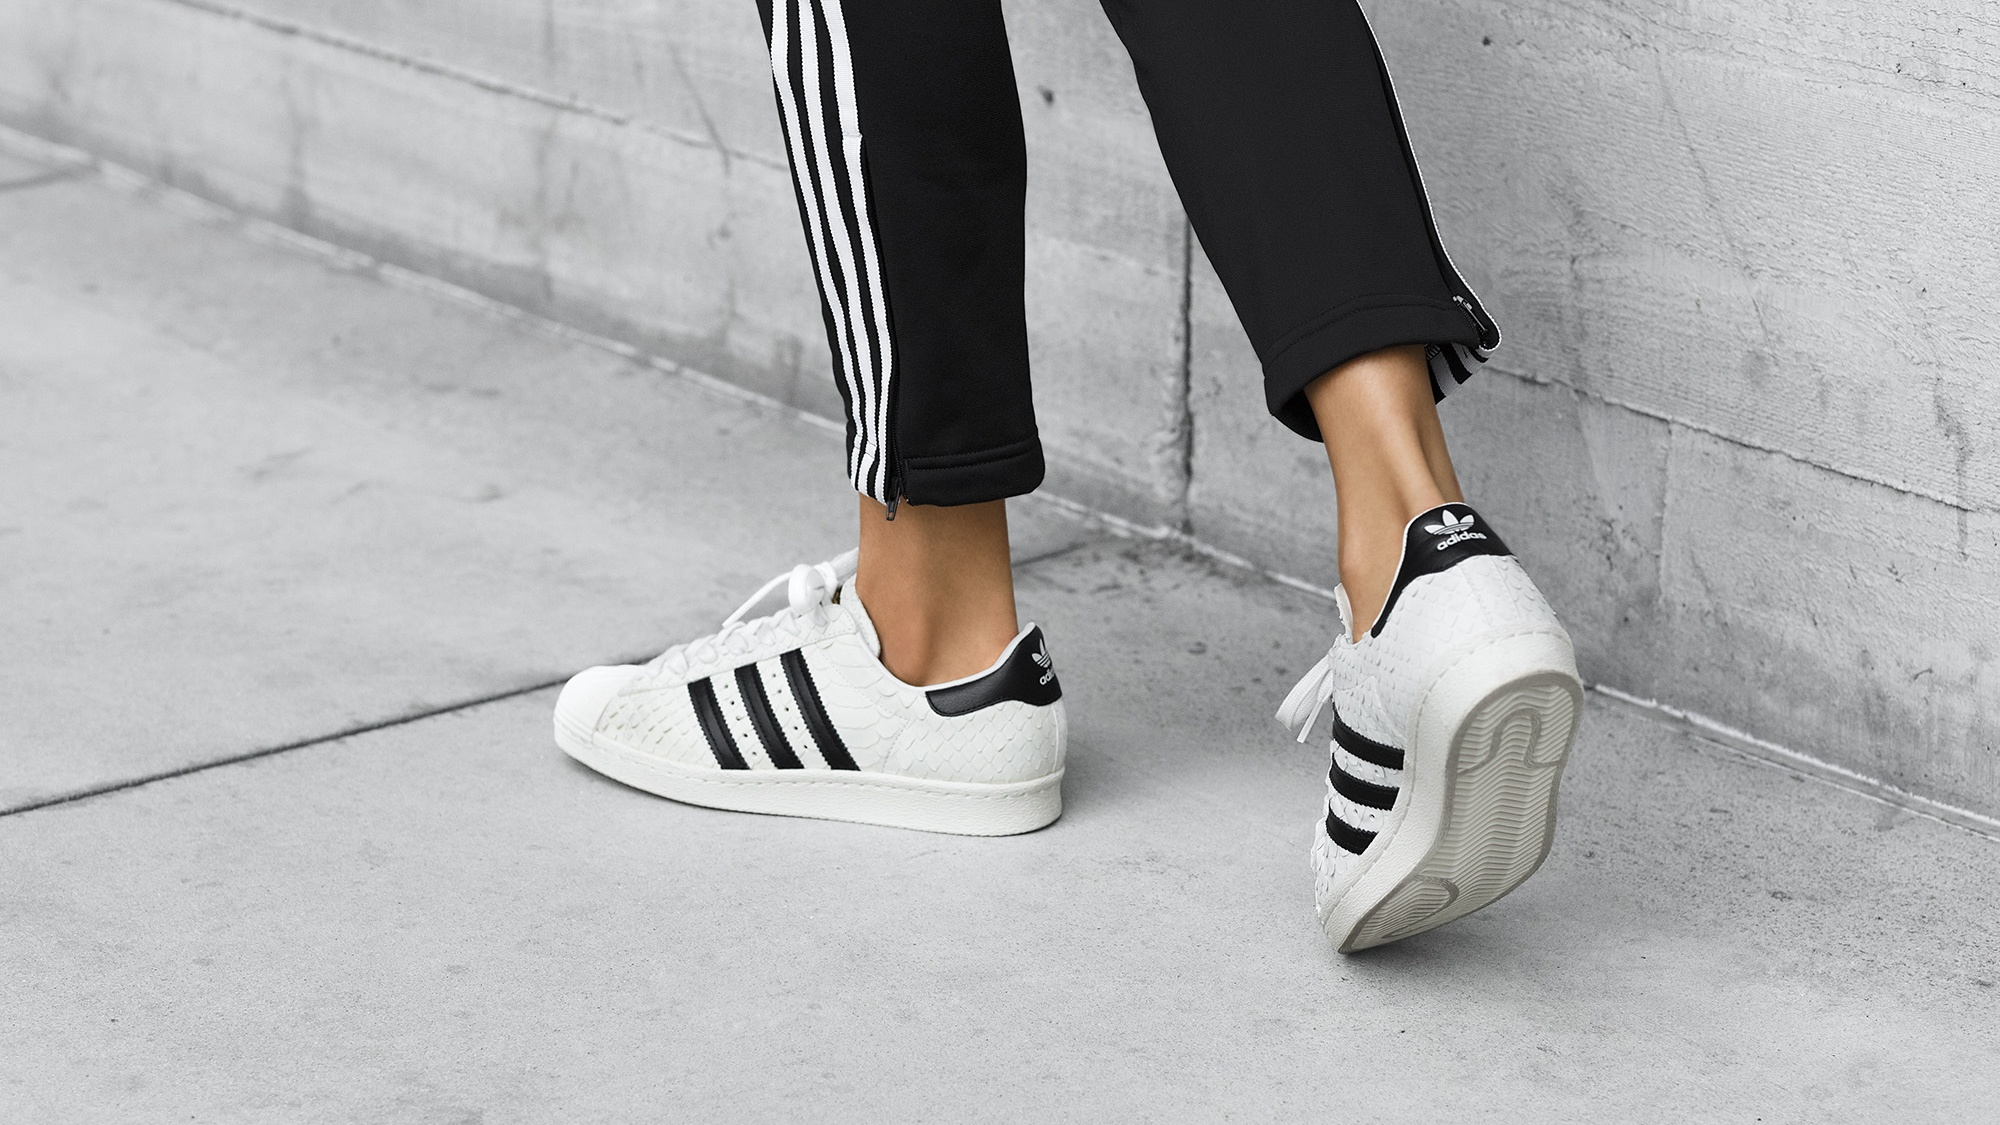 sports shoes 3105f 4f683 The top 10 sneaker list for 2016 was dominated by retro Adidas